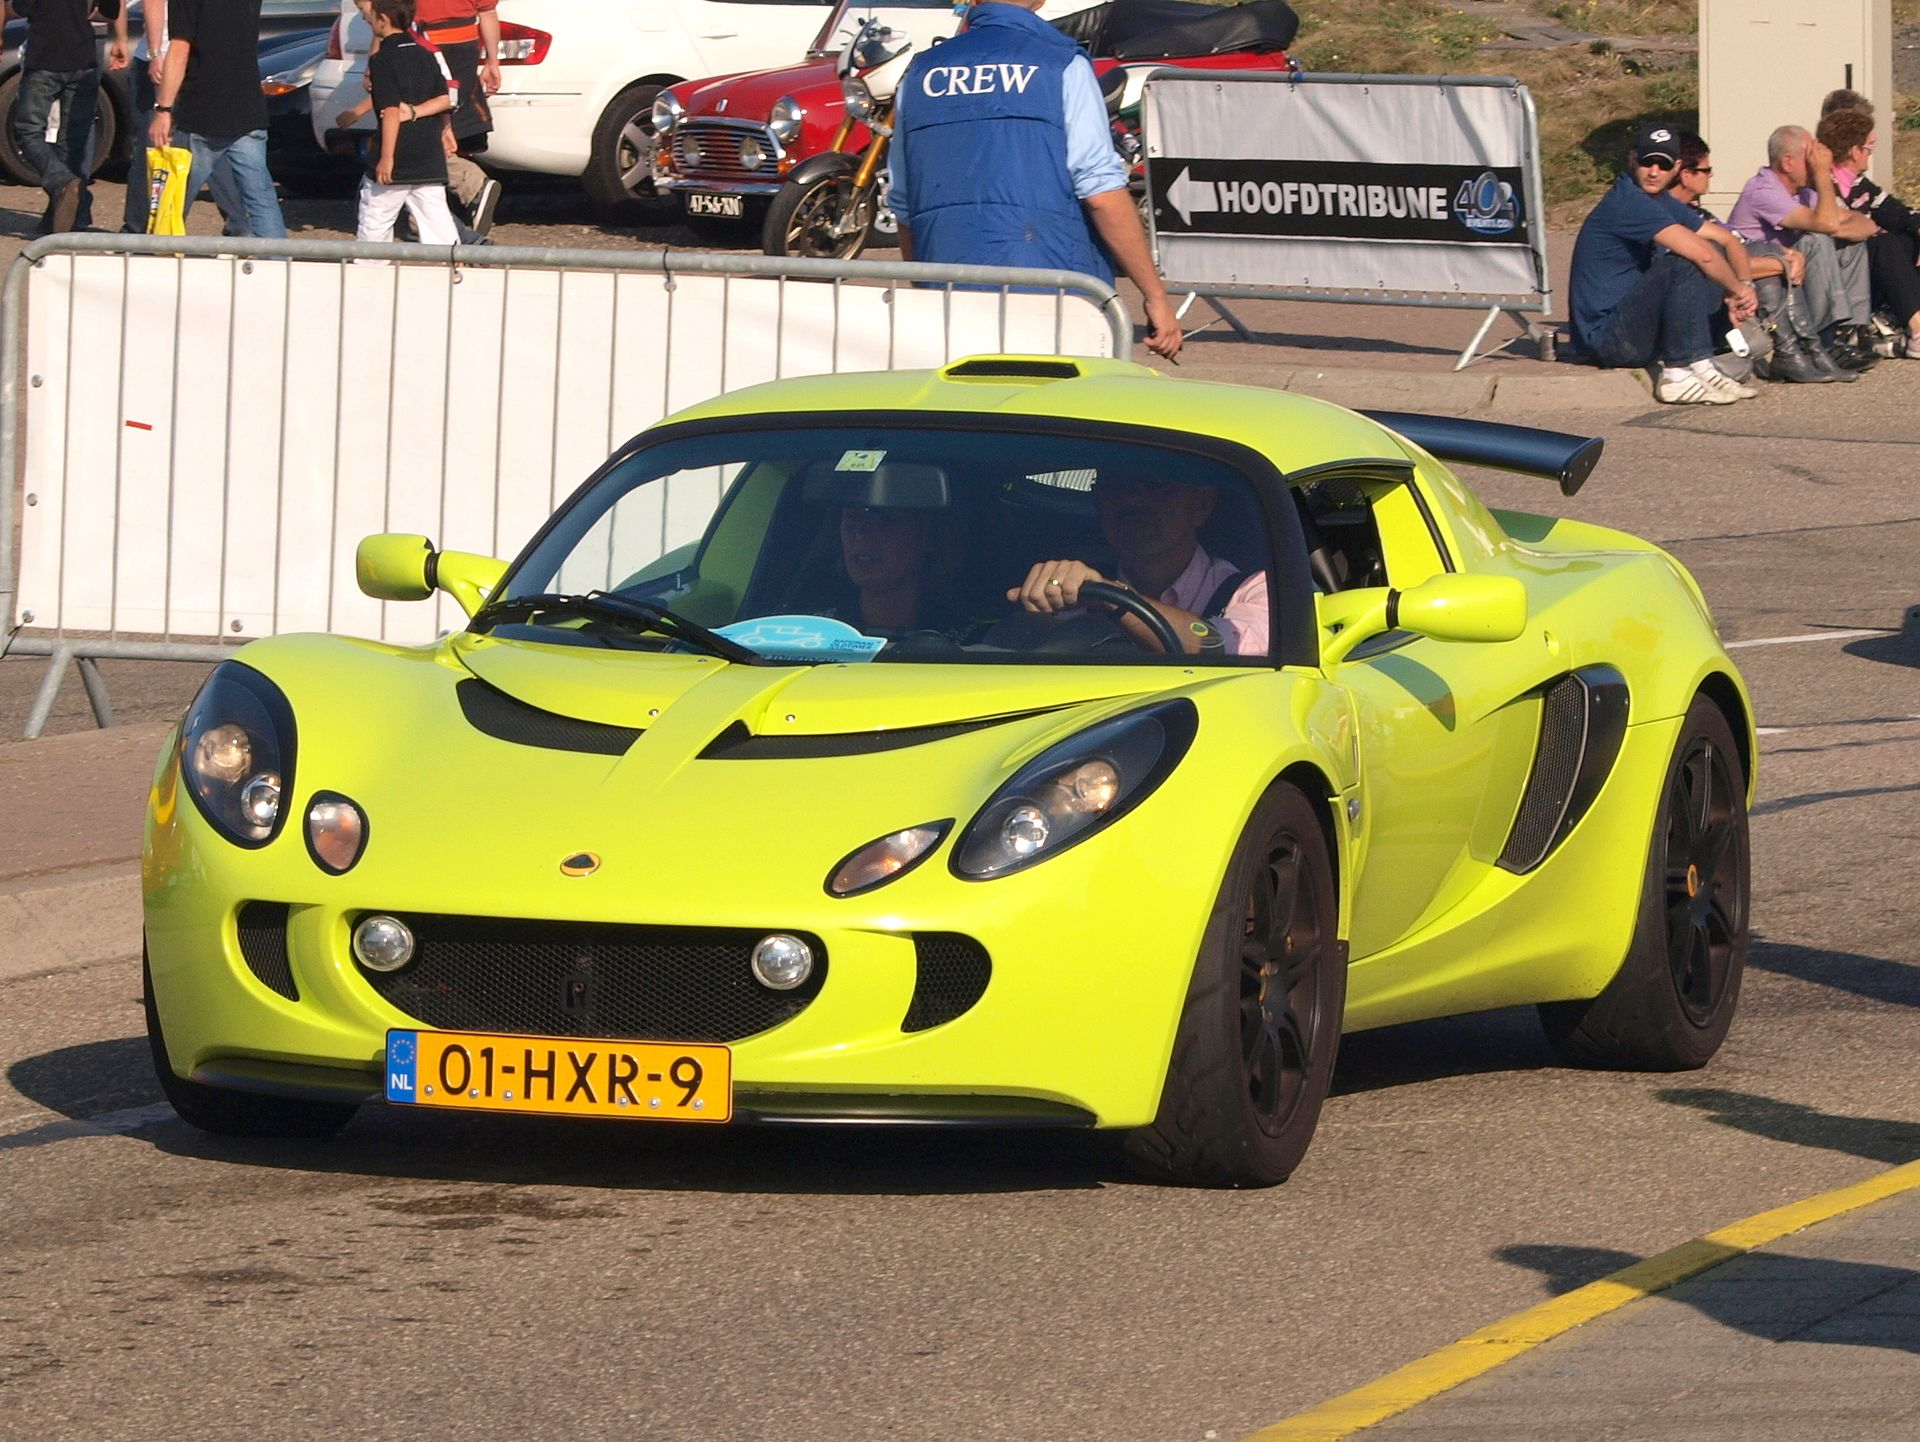 https://upload.wikimedia.org/wikipedia/commons/thumb/f/f6/Lotus_EXIGE_dutch_licence_registration_01-HXR-9_pic1.JPG/1920px-Lotus_EXIGE_dutch_licence_registration_01-HXR-9_pic1.JPG